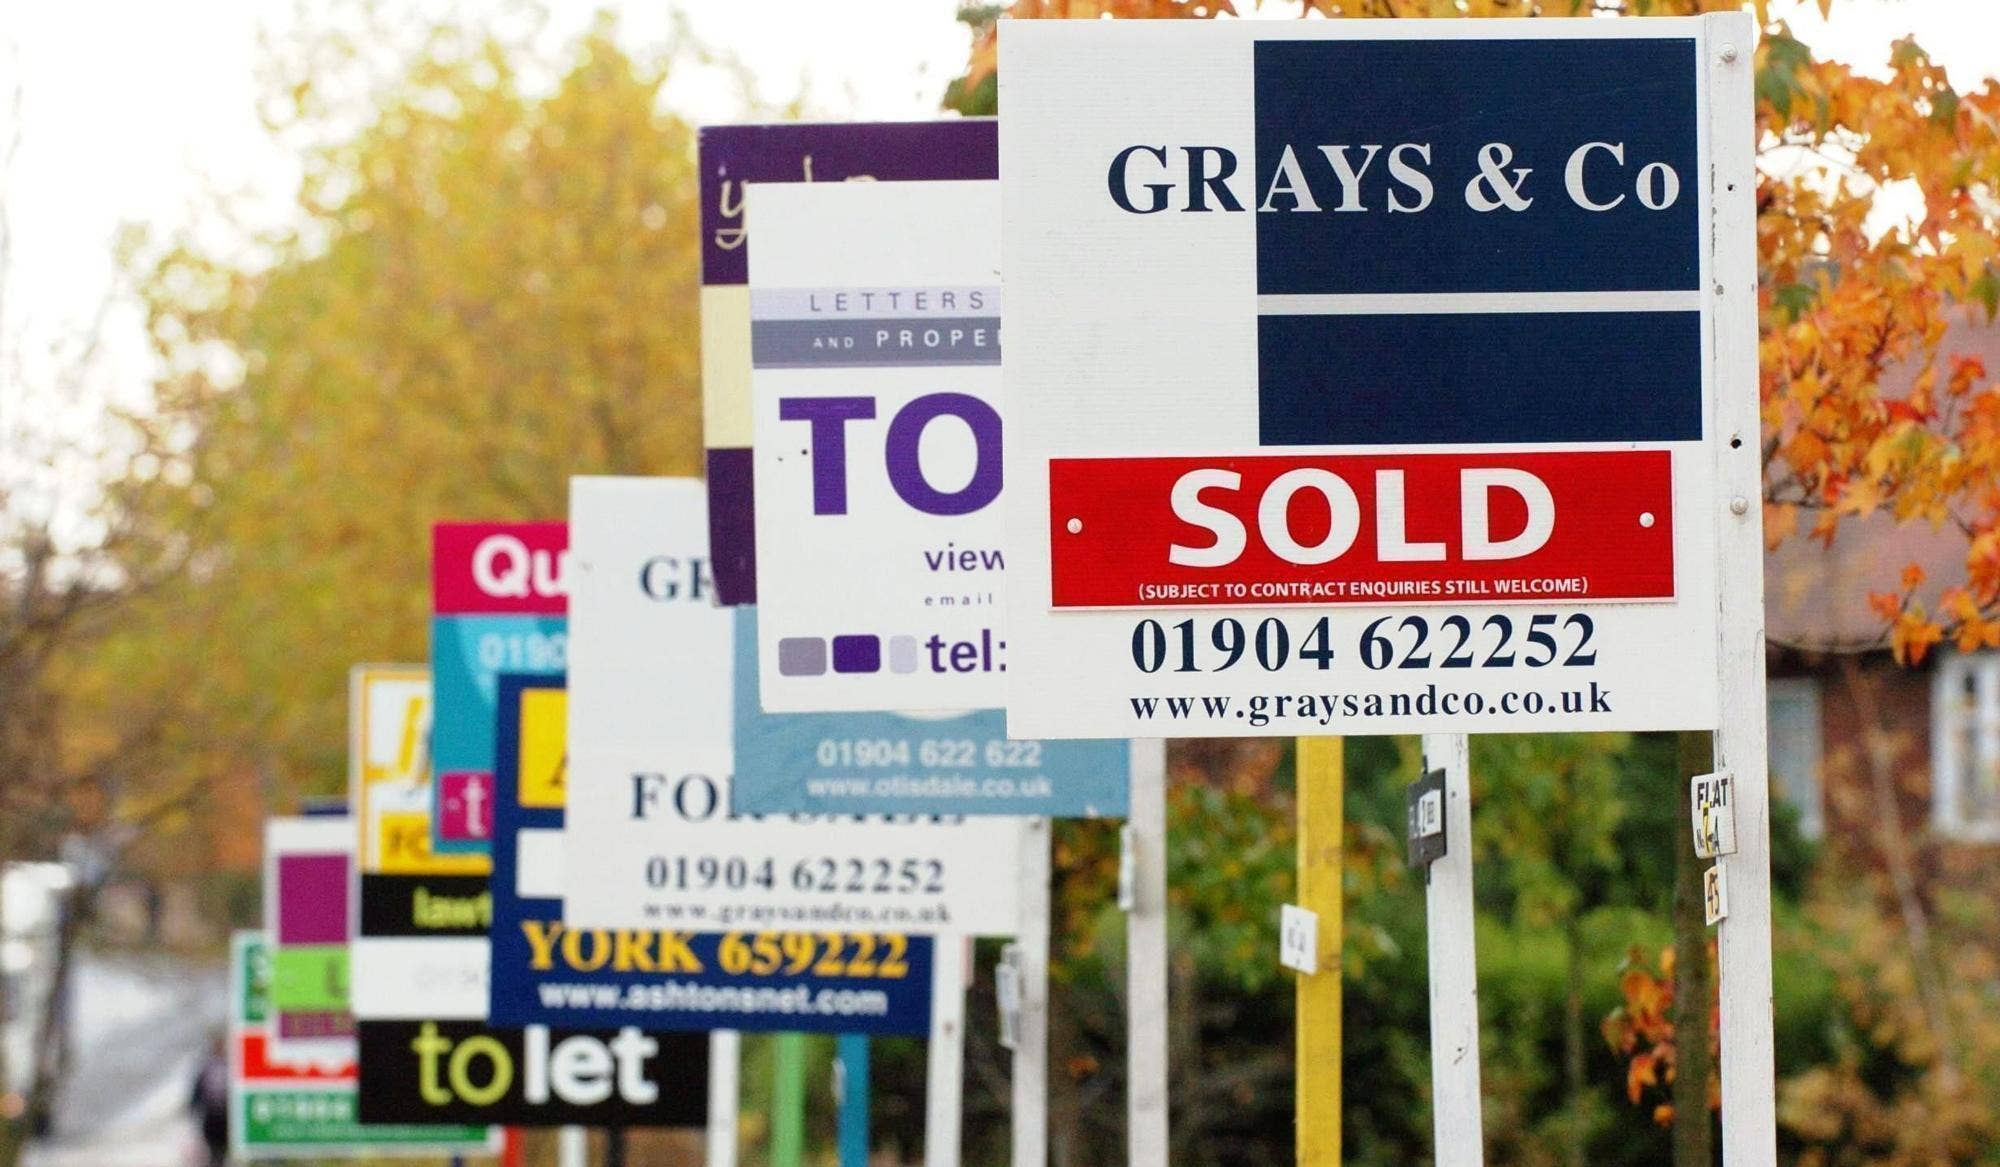 Home sales leapt 24% in January as buyers rushed to meet the stamp duty holiday deadline